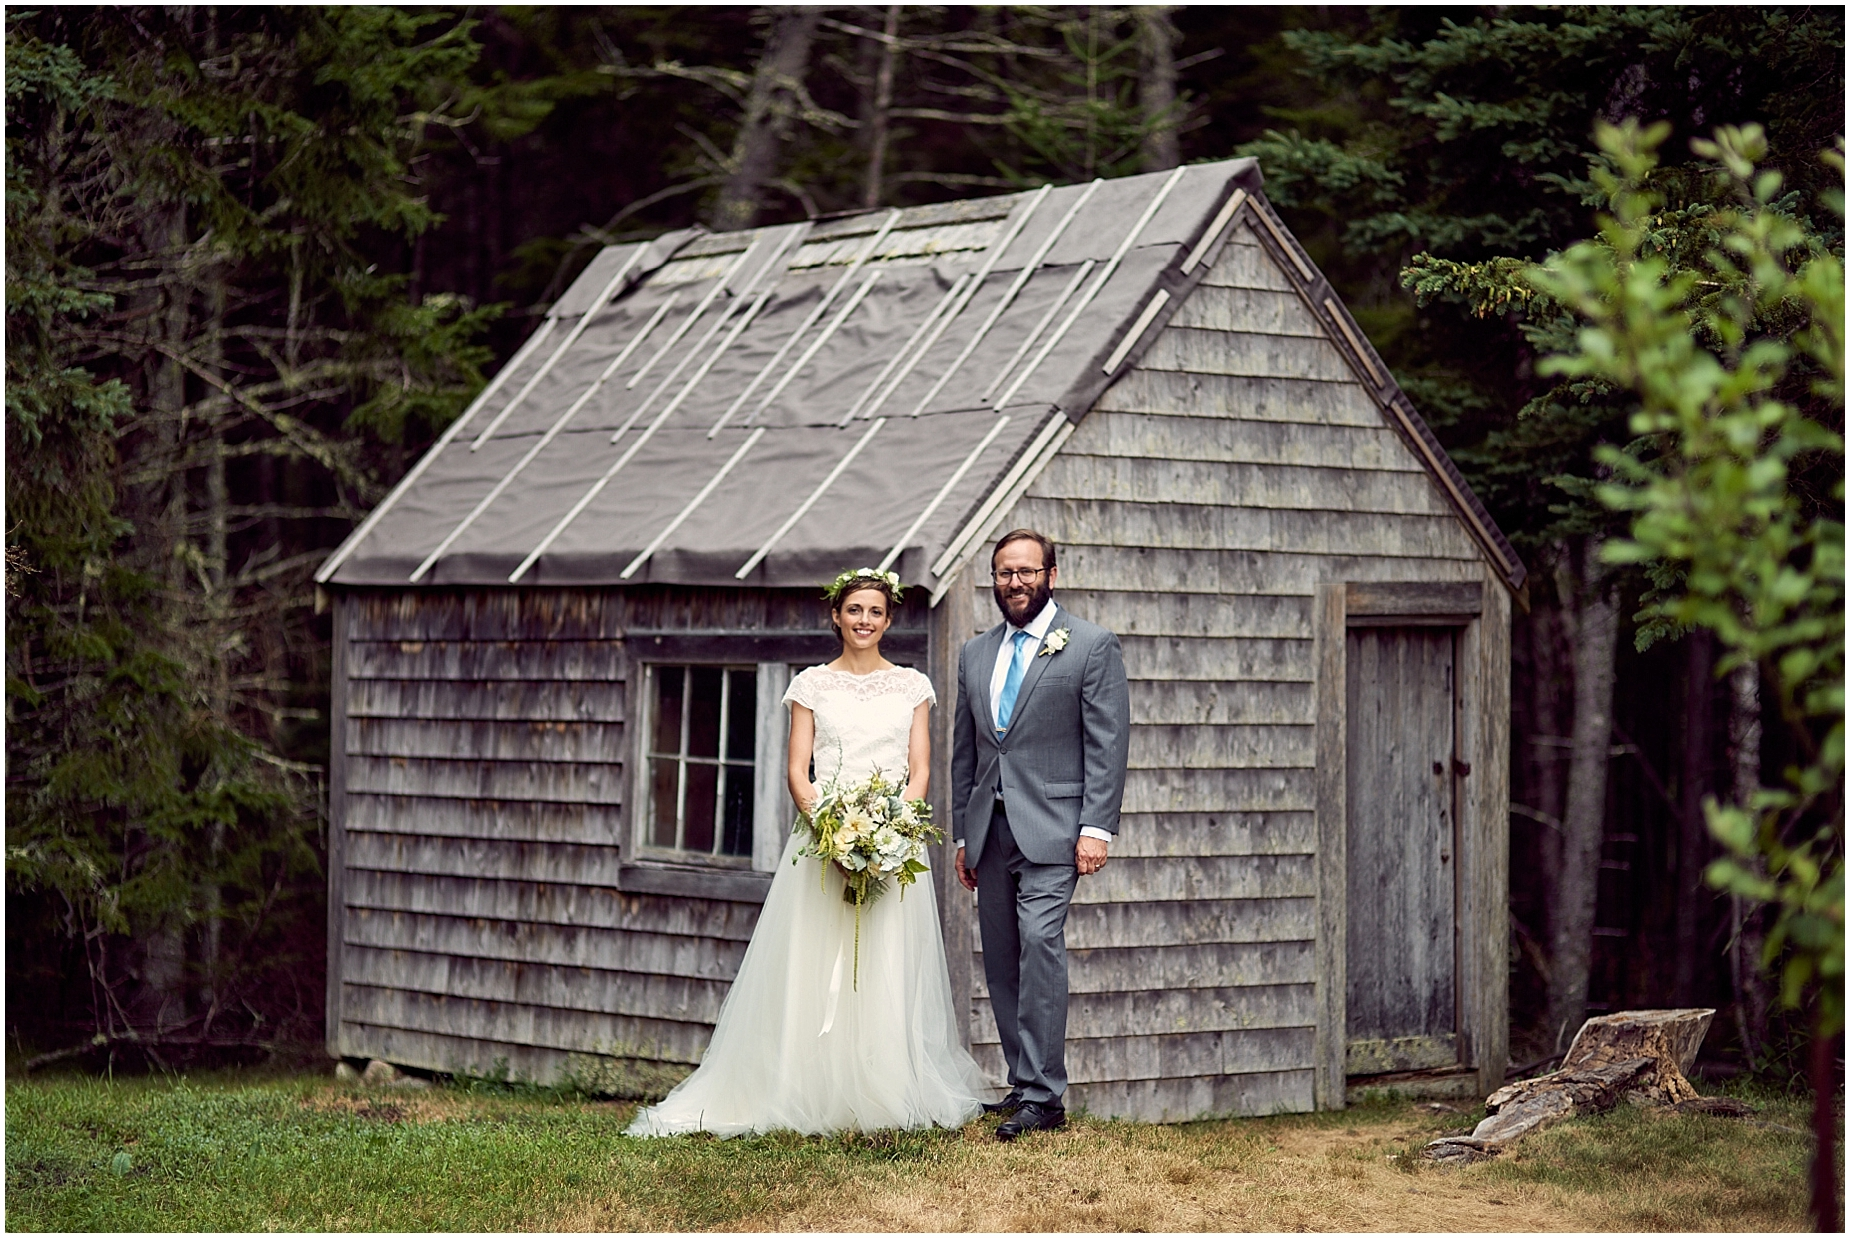 Rachel and John's wedding in Stonington, Maine